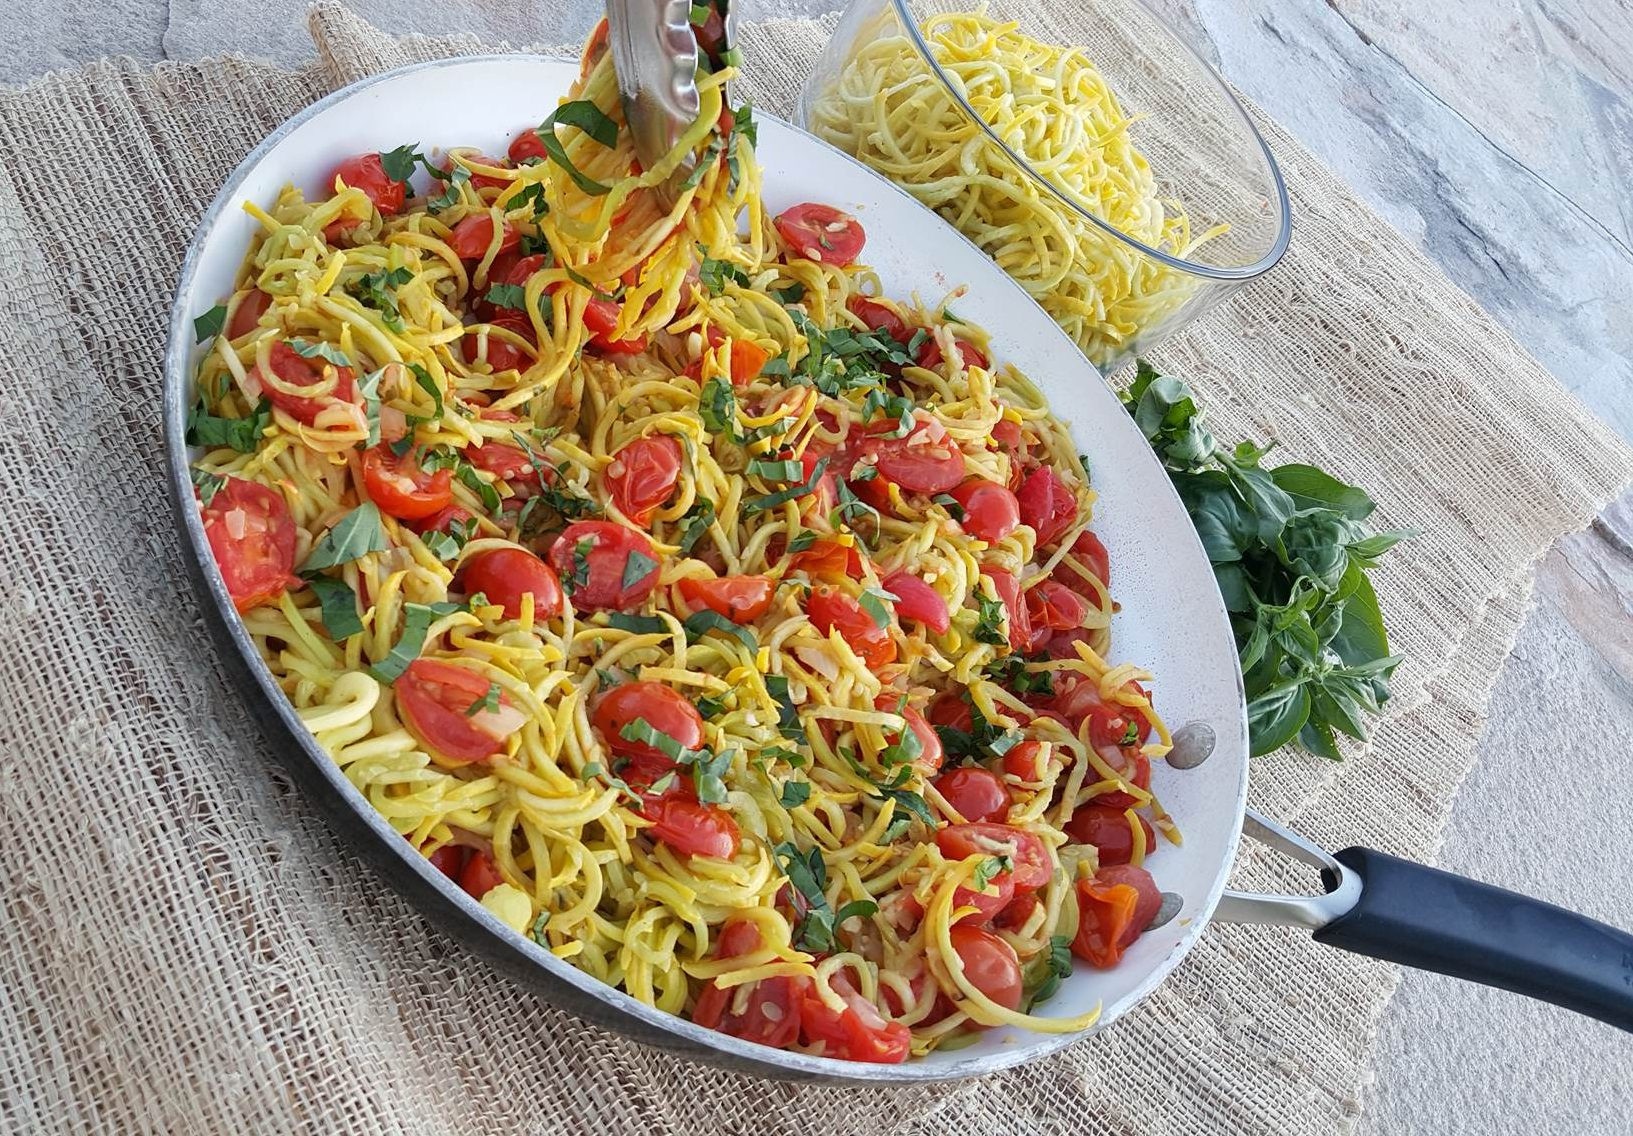 Summer Squash Noodles Recipes  Yellow Summer Squash Spaghetti with Roasted Tomato Sauce